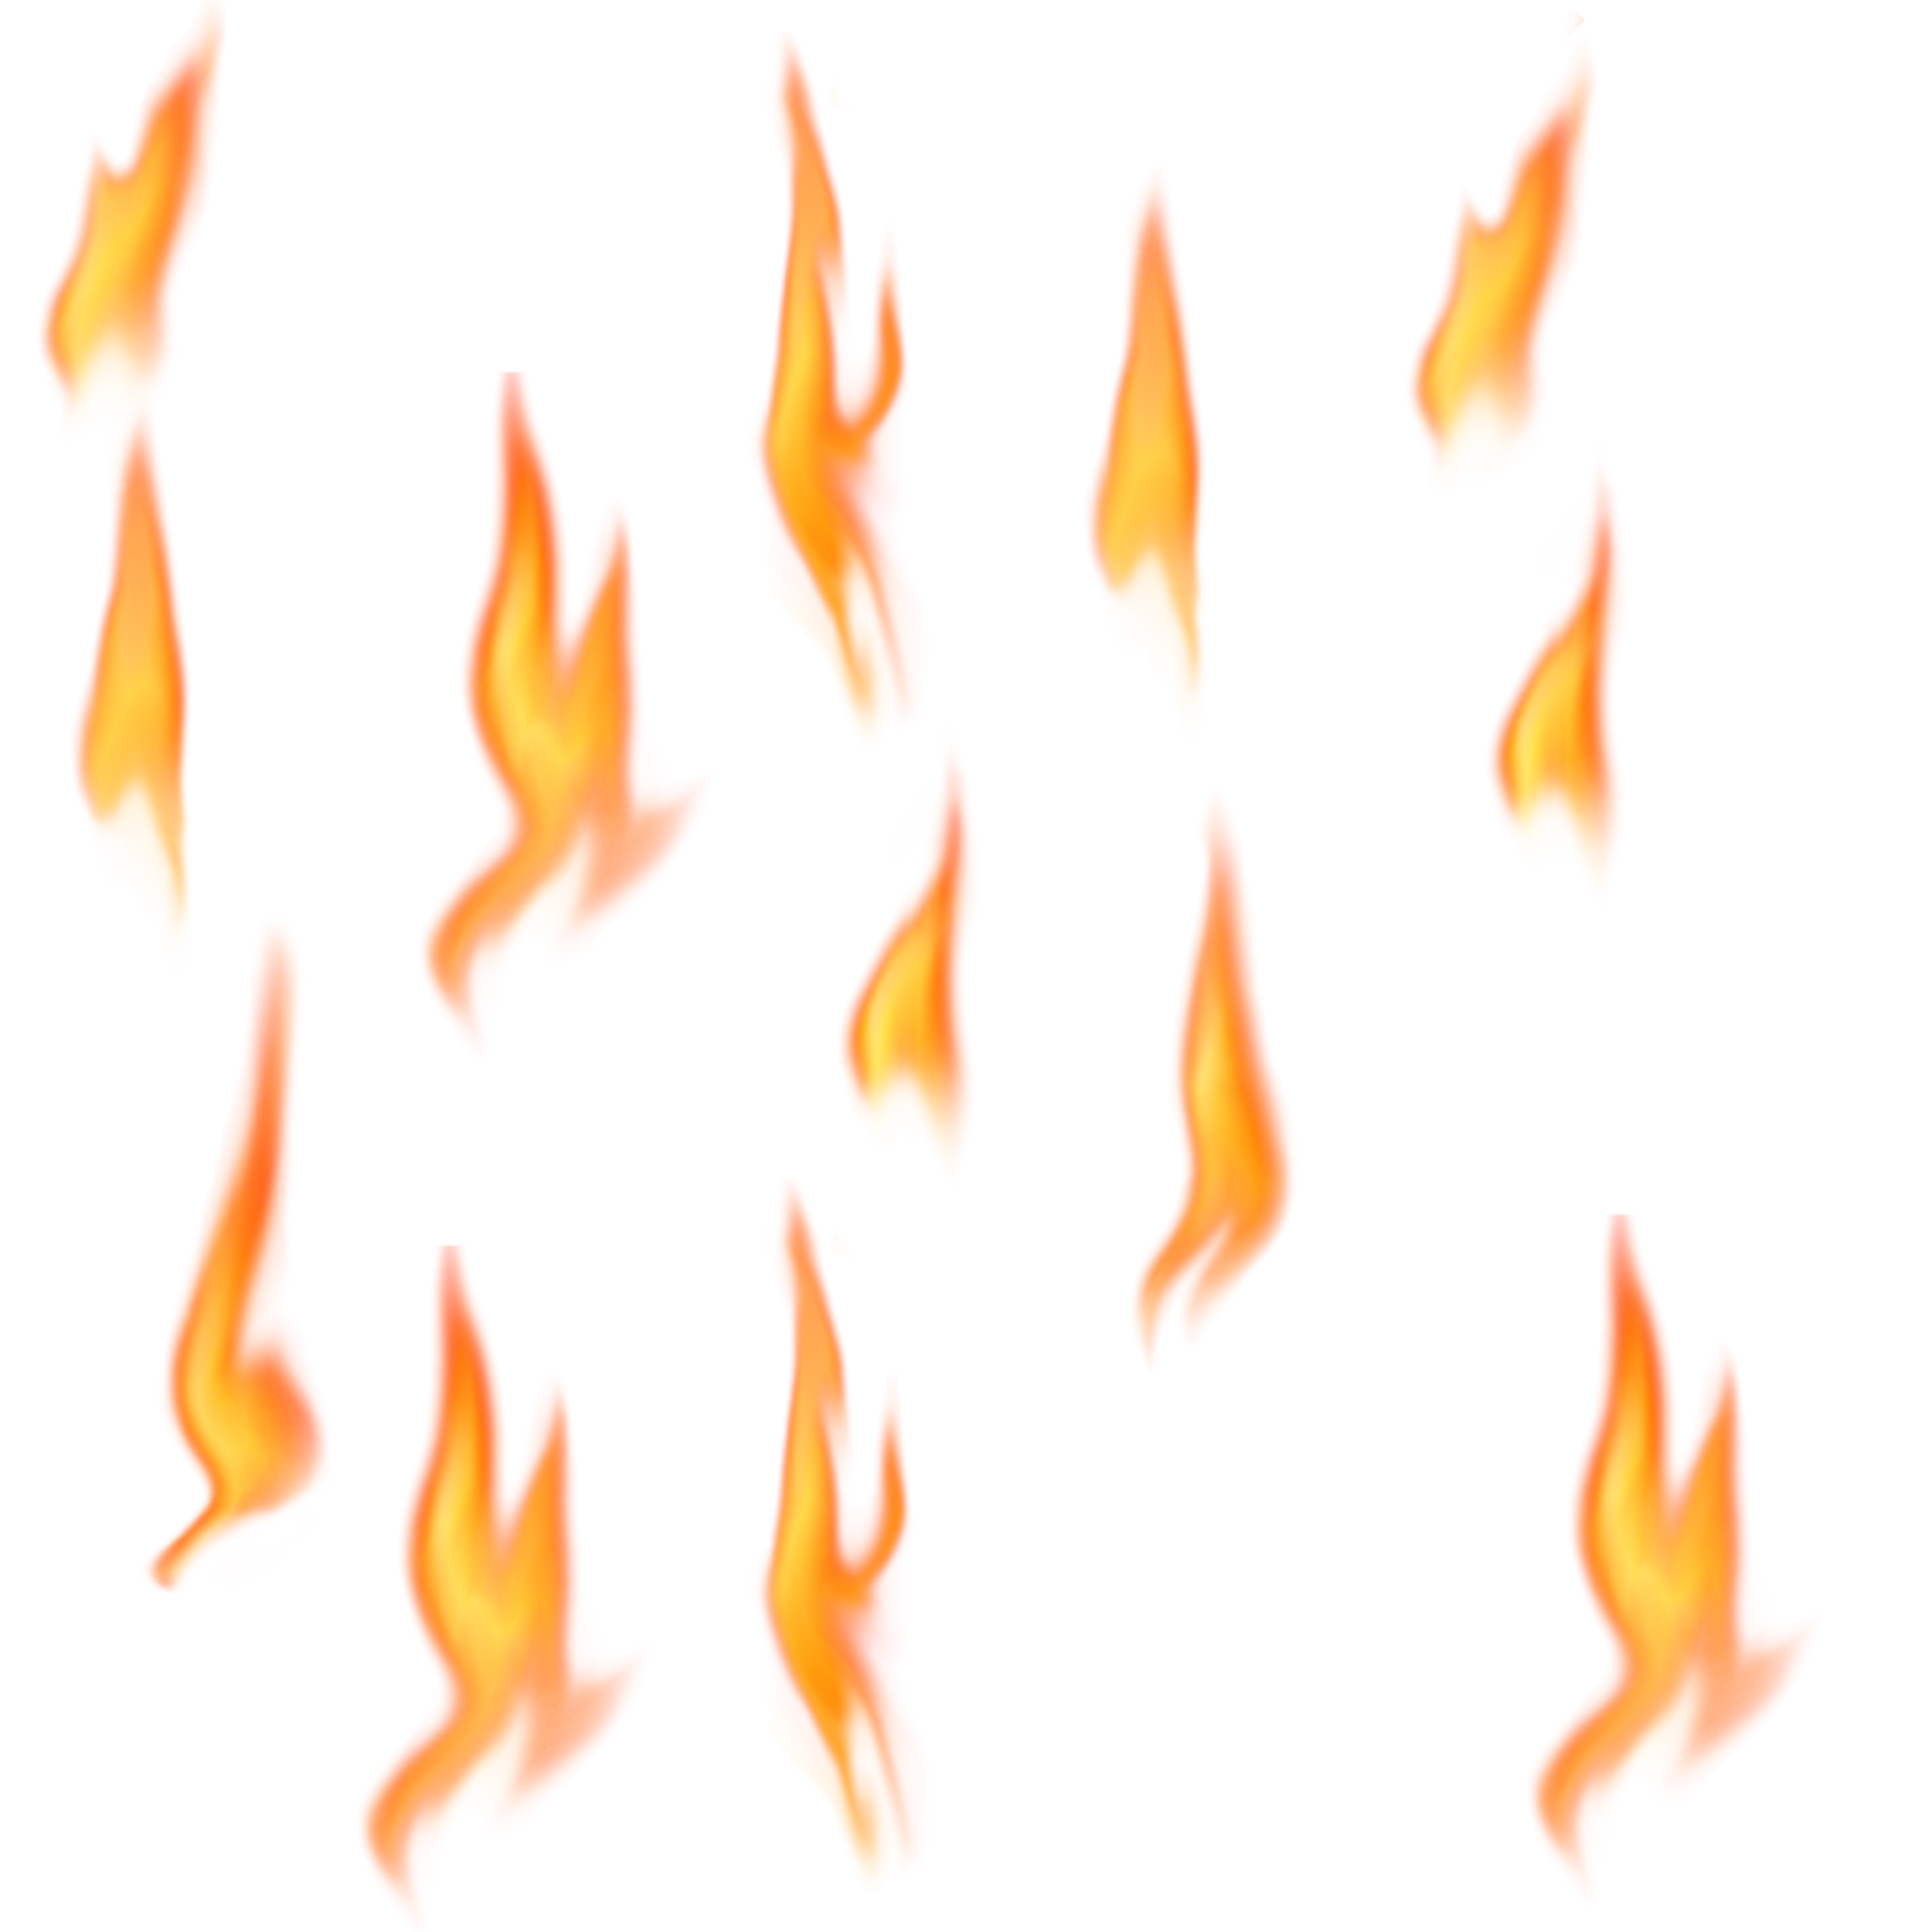 Flame fire PNG images free download.